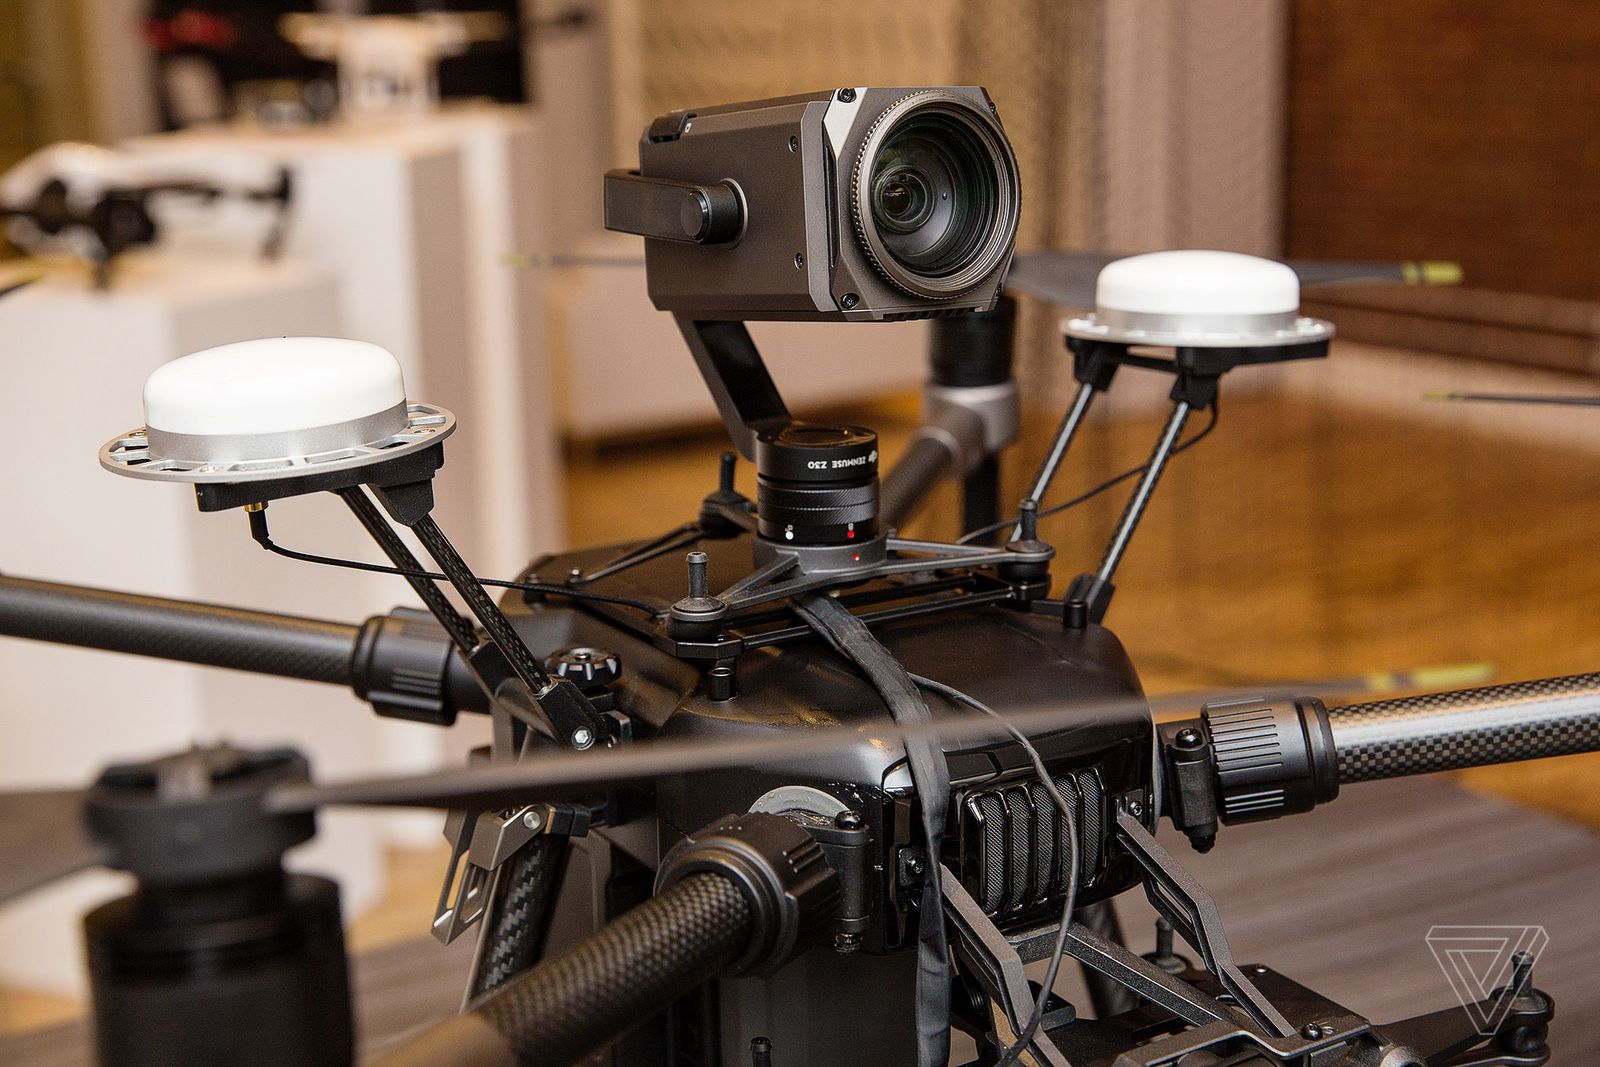 DJI announced the Matrice 200 all-weather 3-camera drone